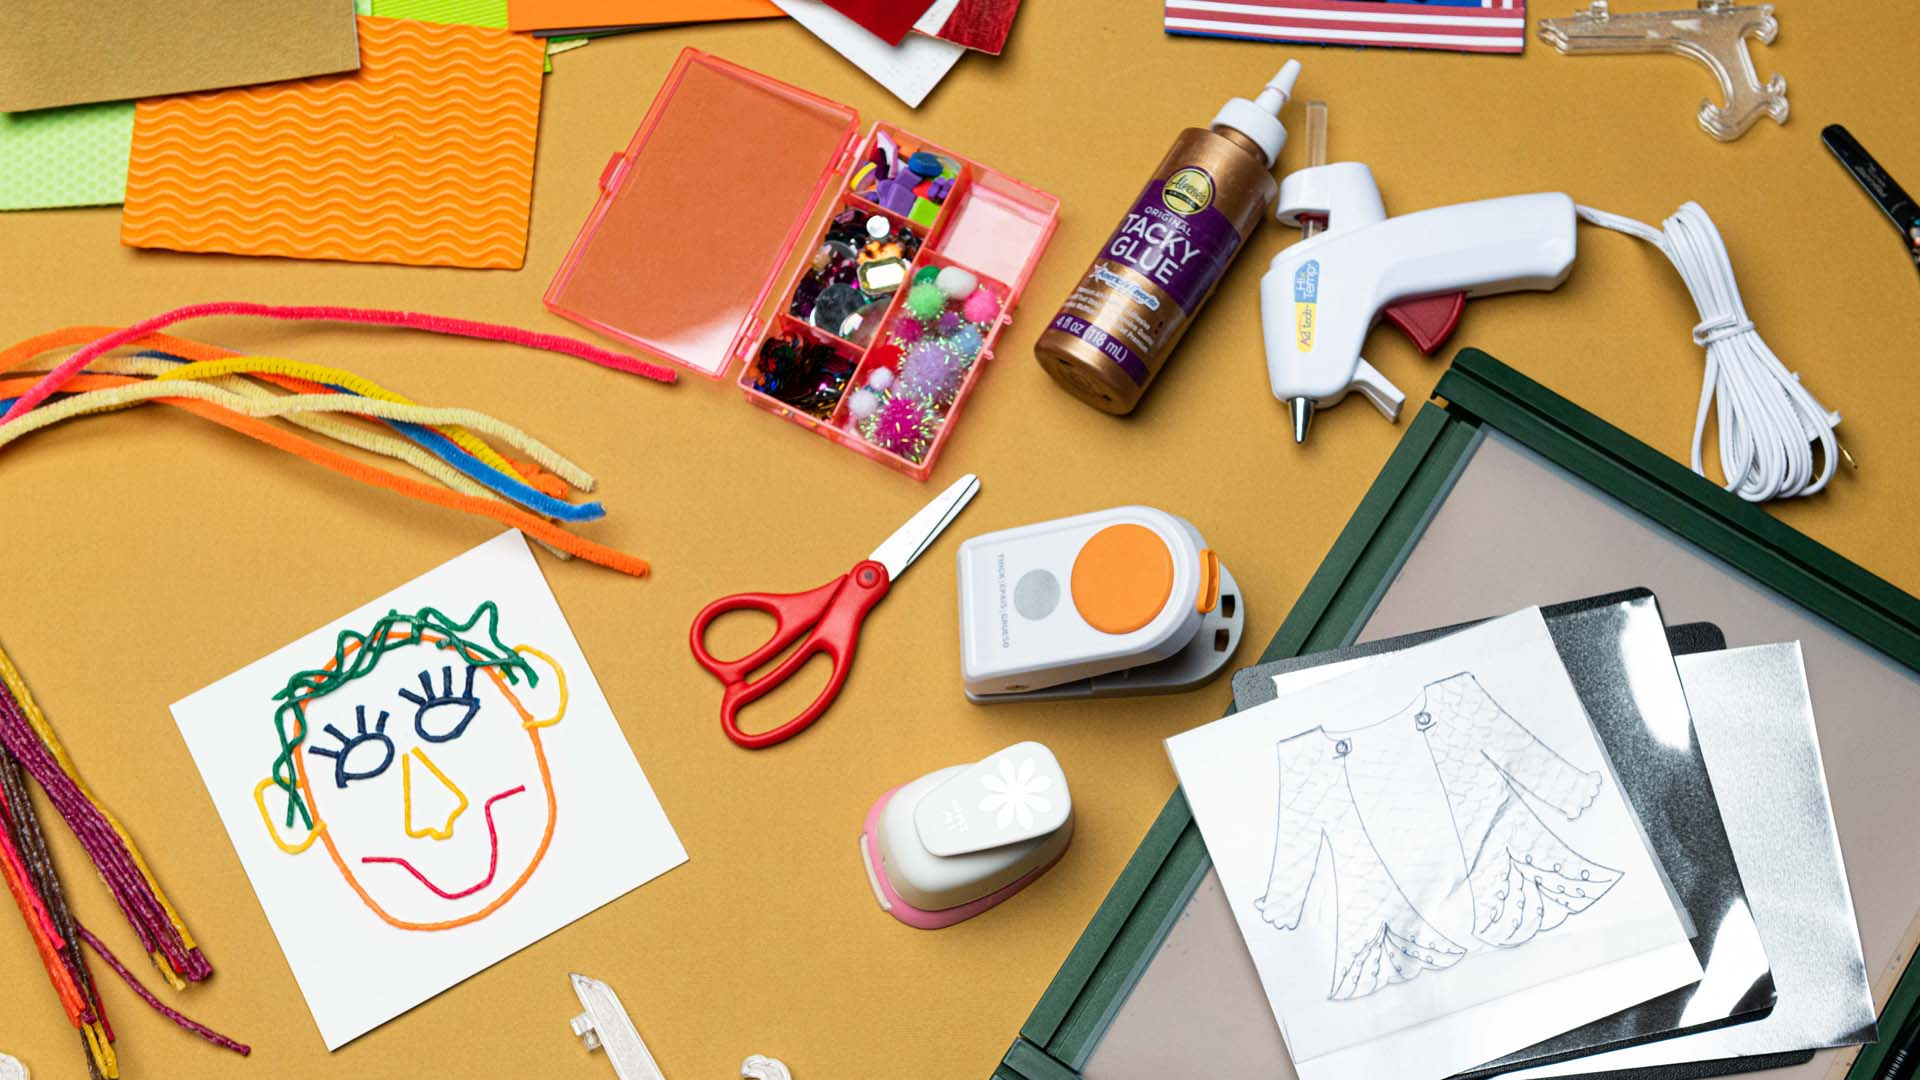 Scattered crafting tools including colorful papers, a bottle of glue. a glue gun, scissors, tactile beads in a tray, embossing foil, and a card with a funny face created with colorful waxed yarn